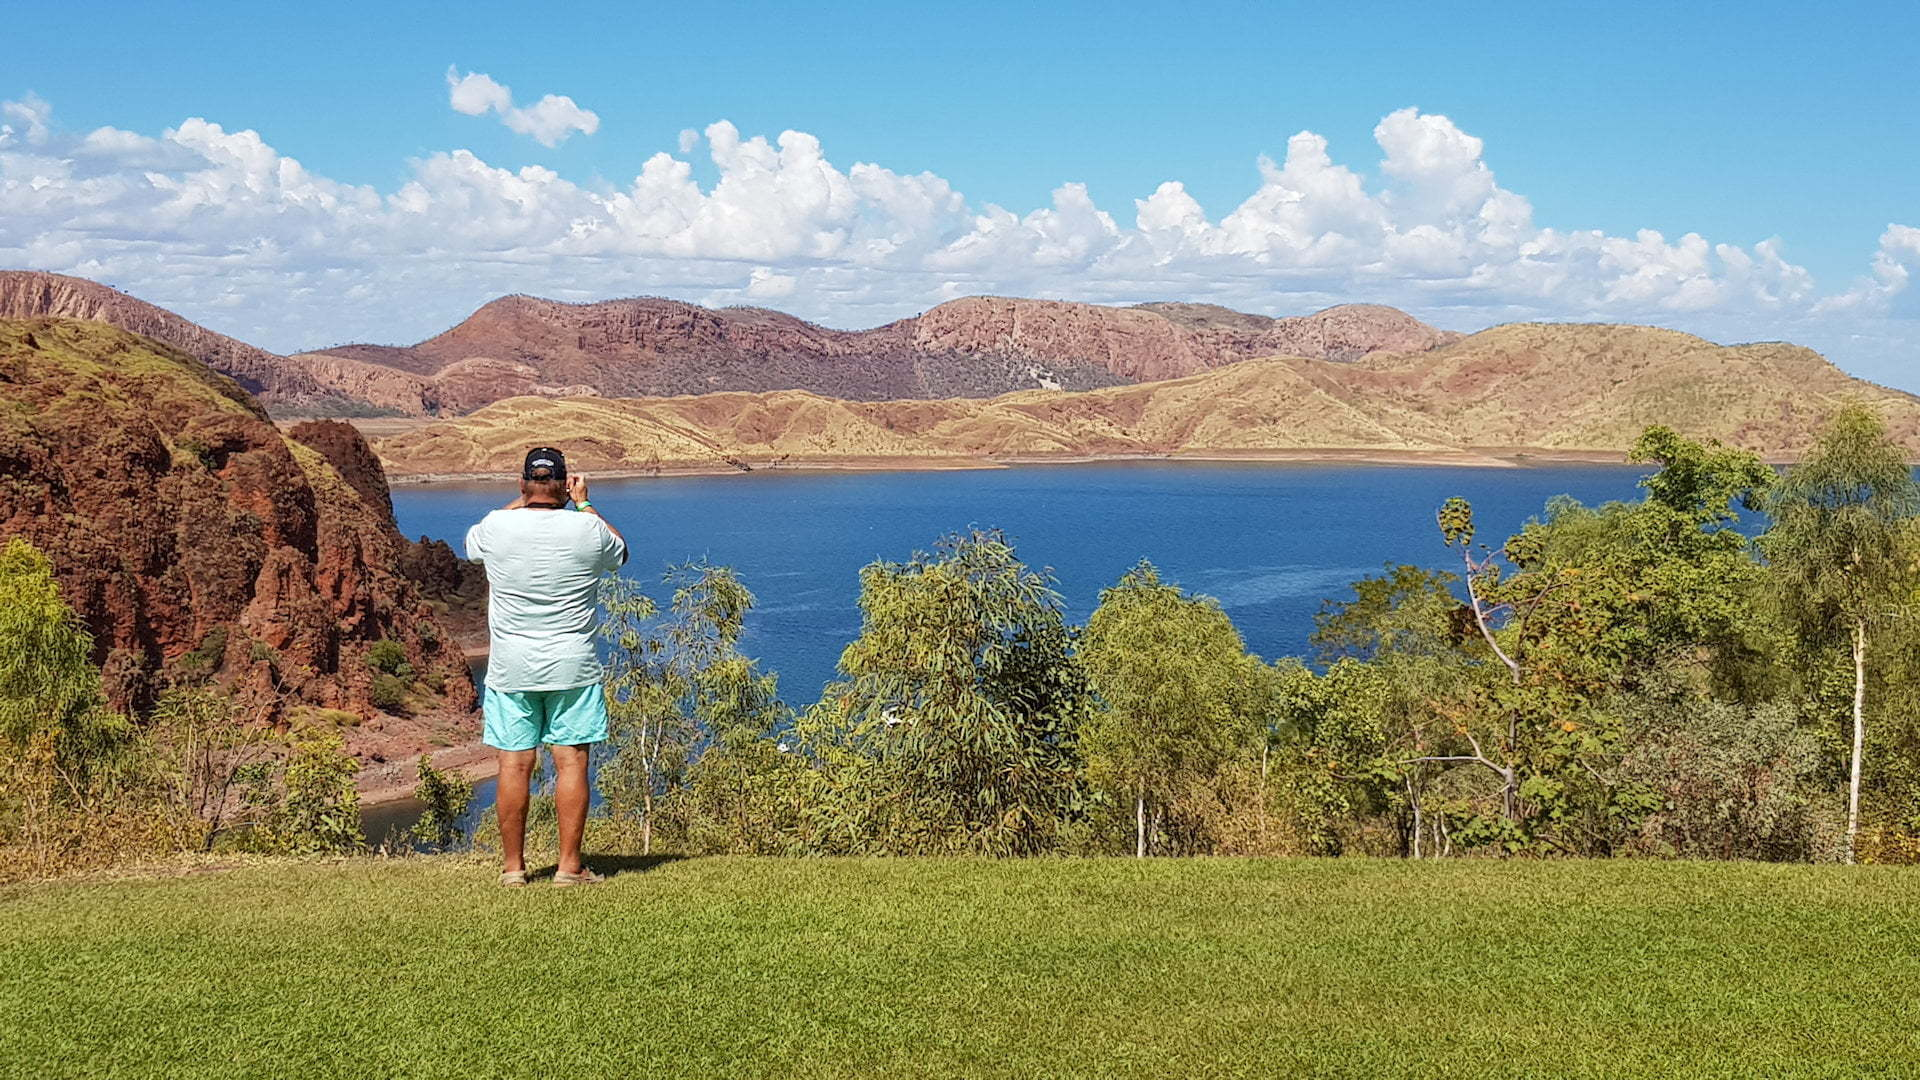 View over Lake Argyle in Western Australia, blue water from the Lake contrasts with the green grass and red rocks